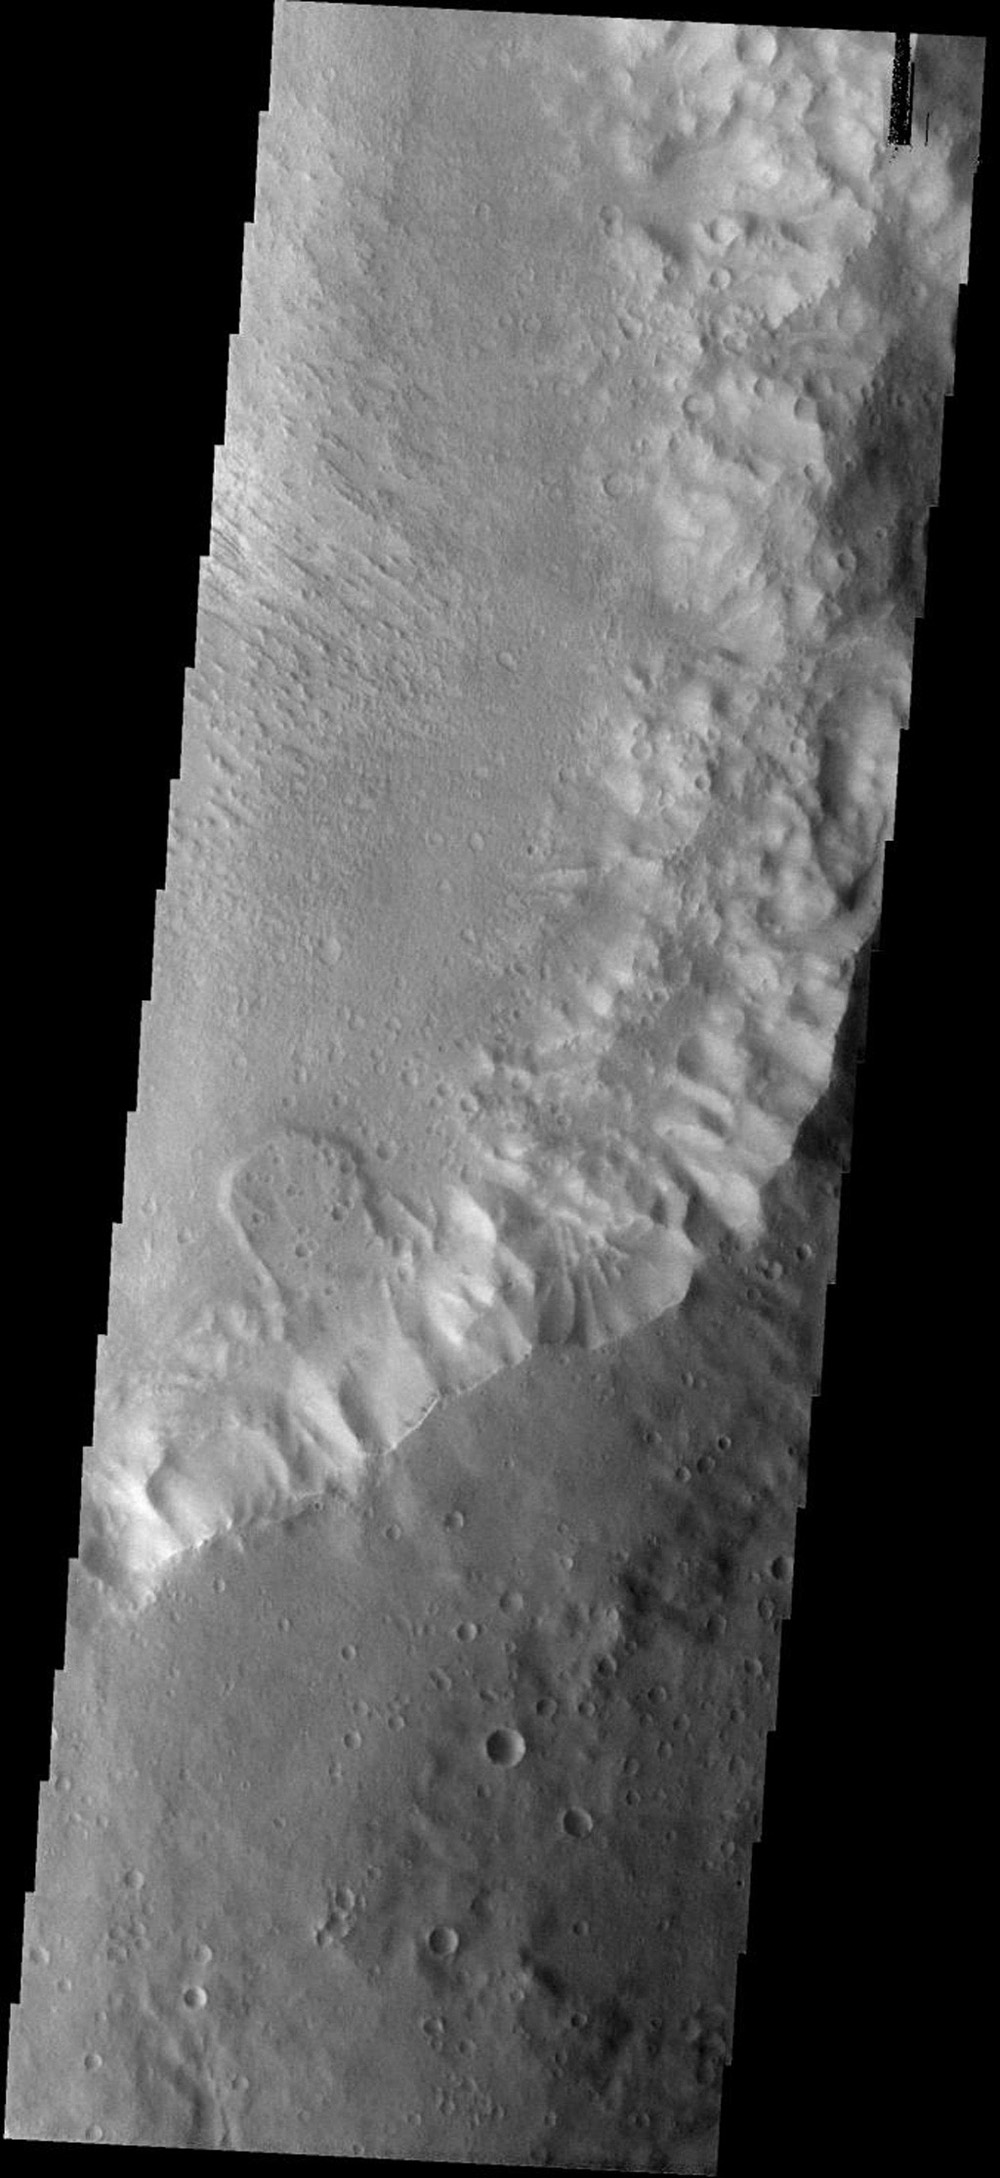 This small landslide on Mars is located in an unnamed crater as seen by NASA's Mars Odyssey spacecraft.